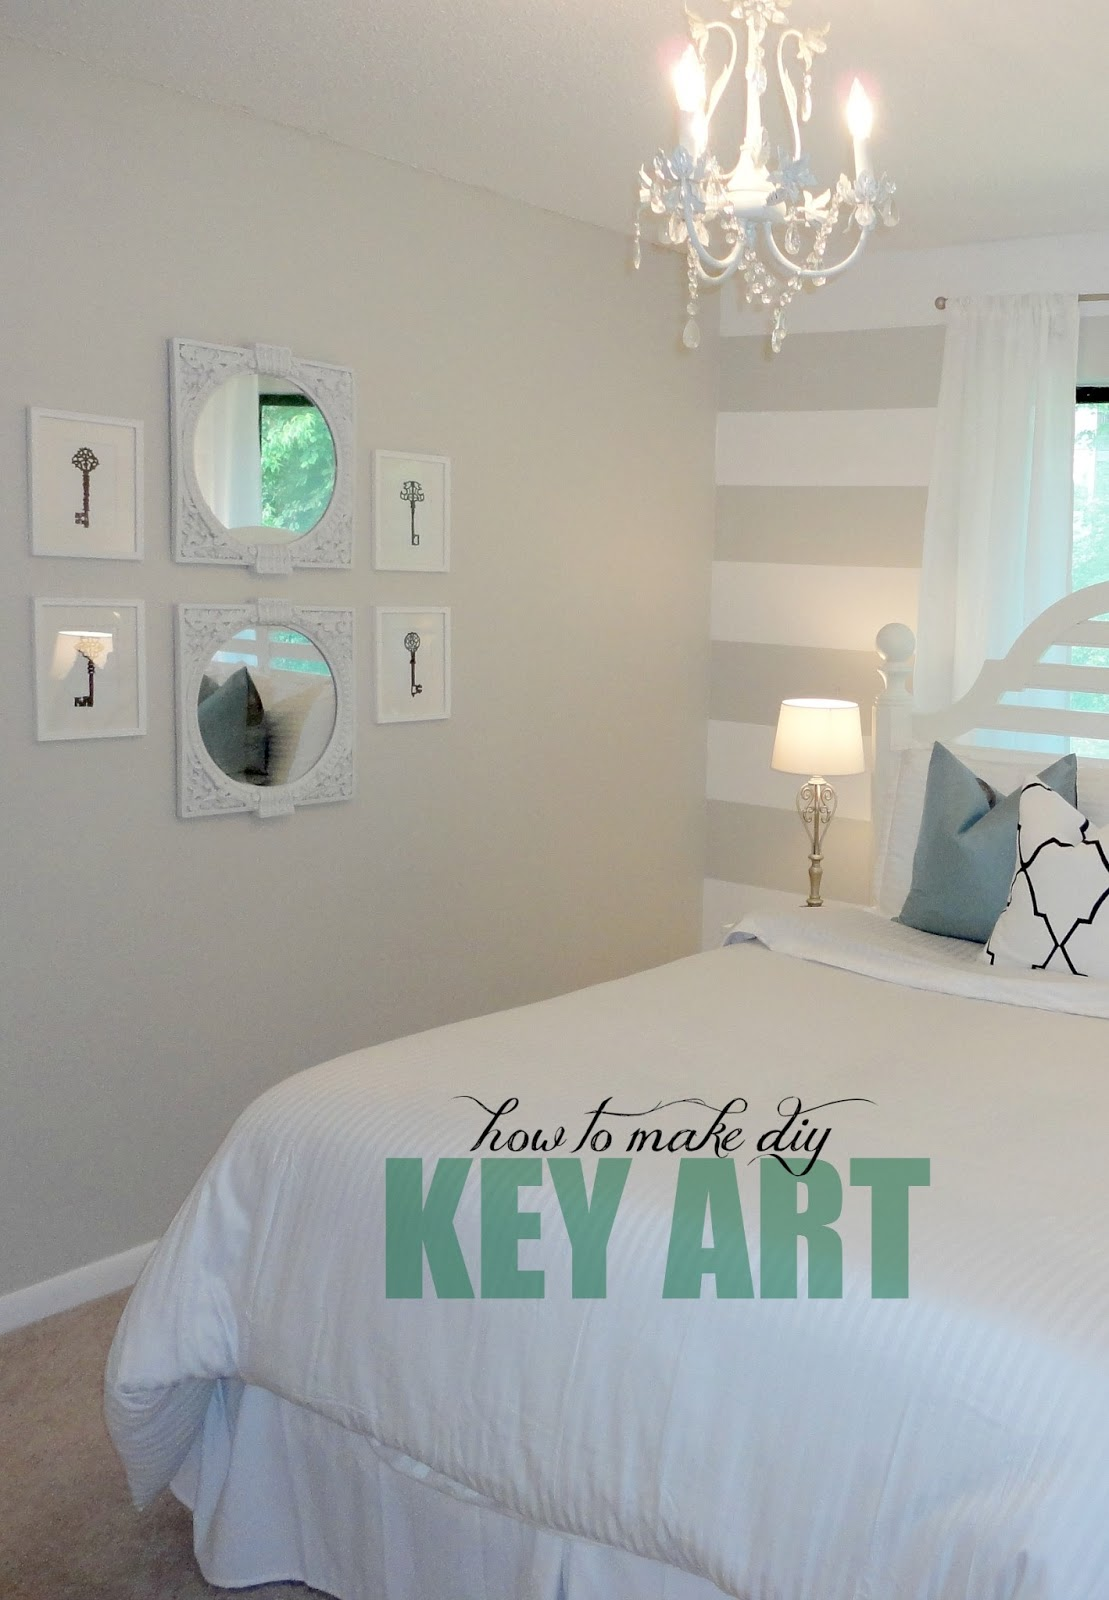 Livelovediy 10 diy art ideas easy ways to decorate your walls - Bedroom decoration diy ...